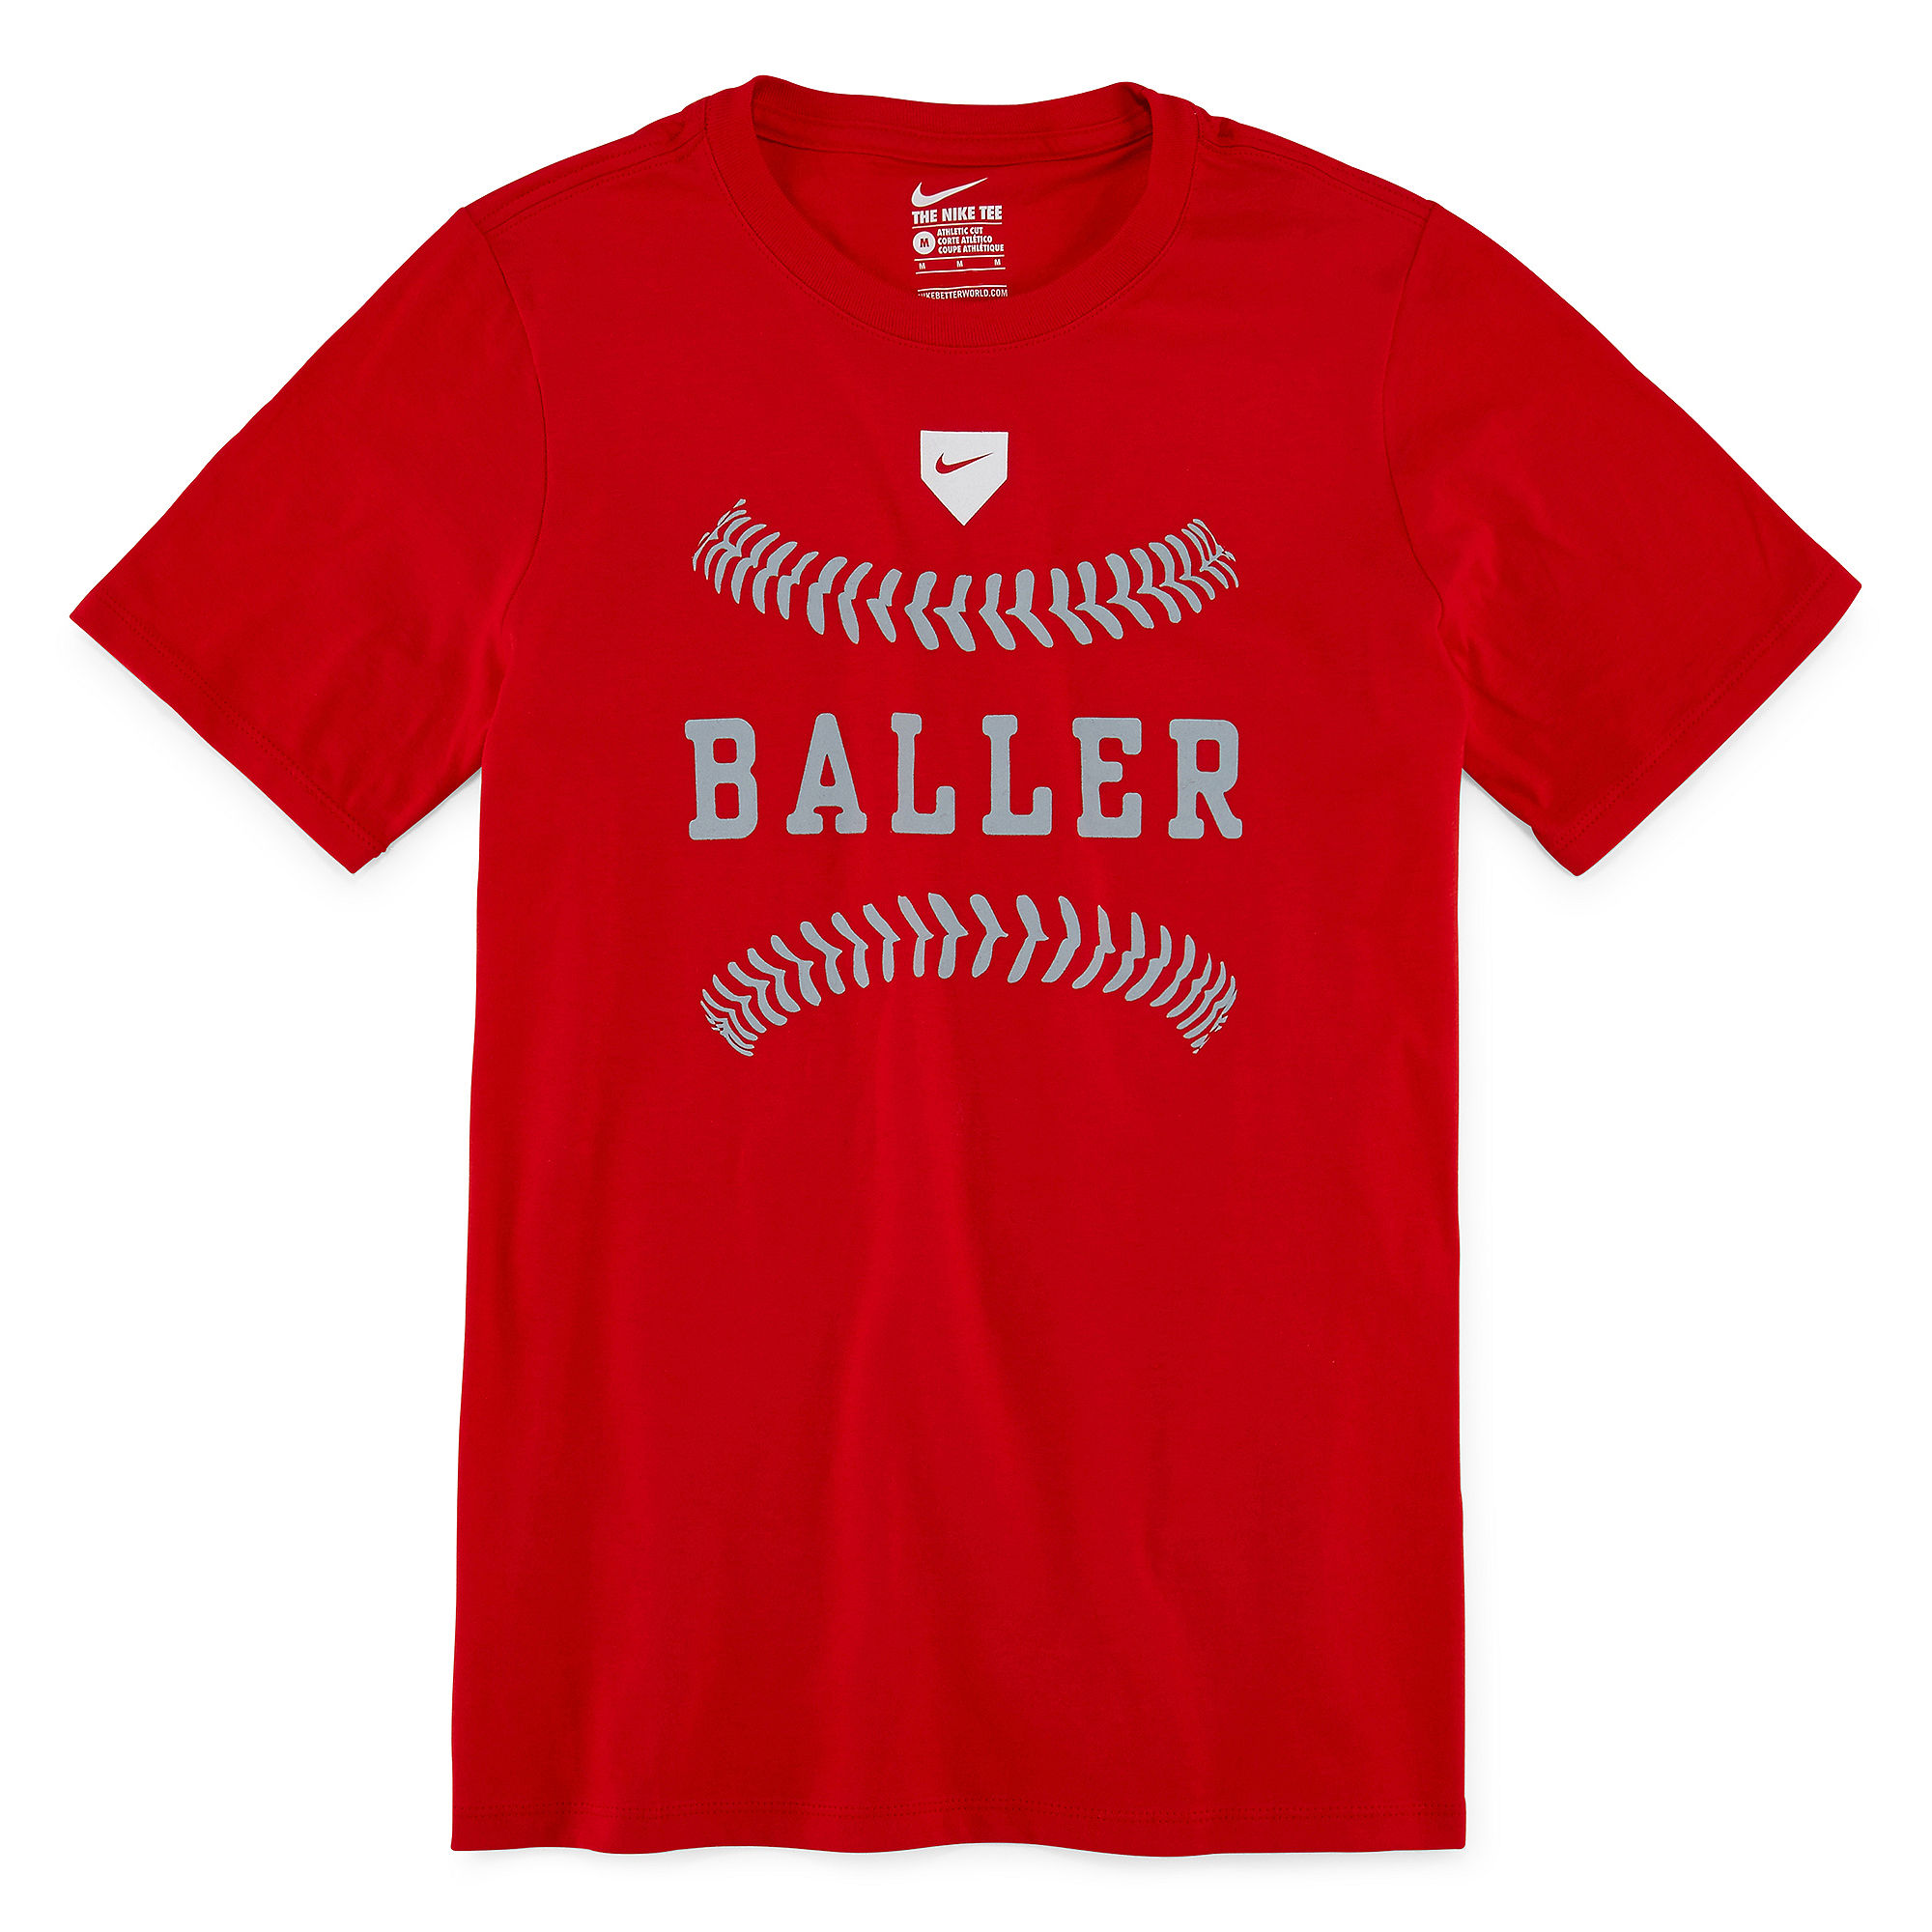 eb1b43f4 ... UPC 884726035375 product image for Nike Base Baller Graphic Tee - Boys 8 -20 ...